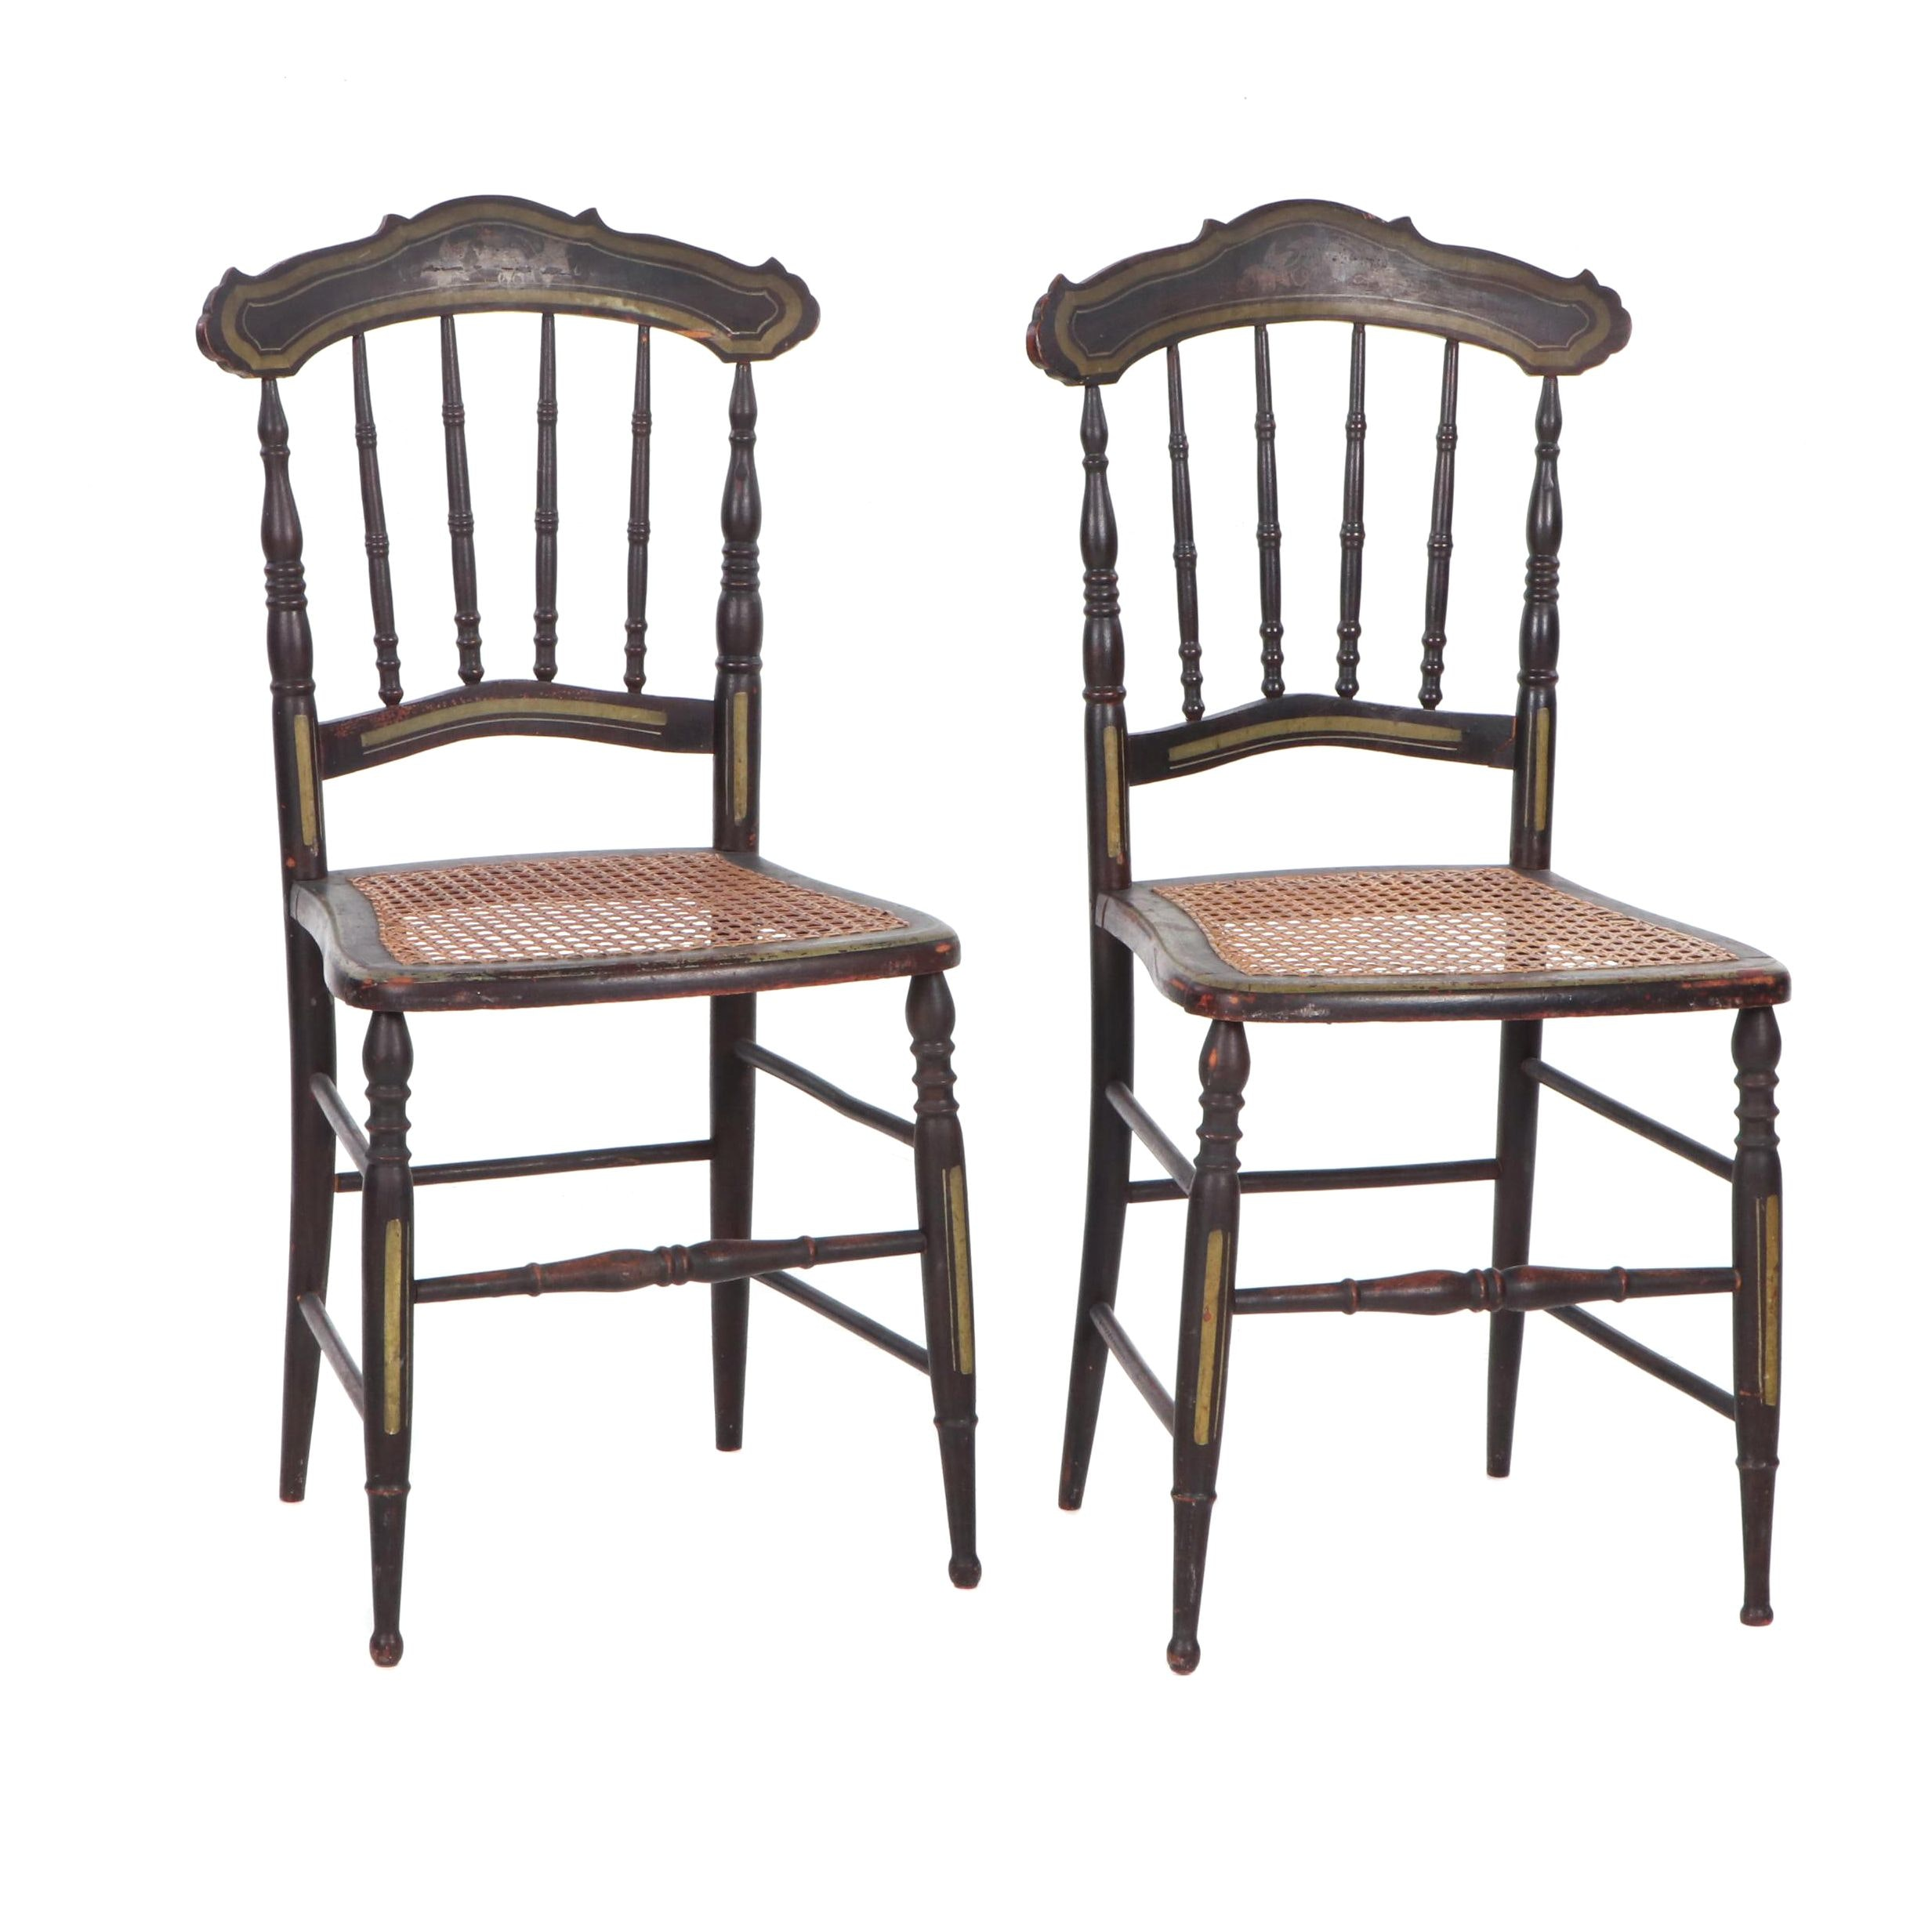 Hitchcock Style Stenciled Wood and Caned Side Chairs, Late 19th/Early 20th C.